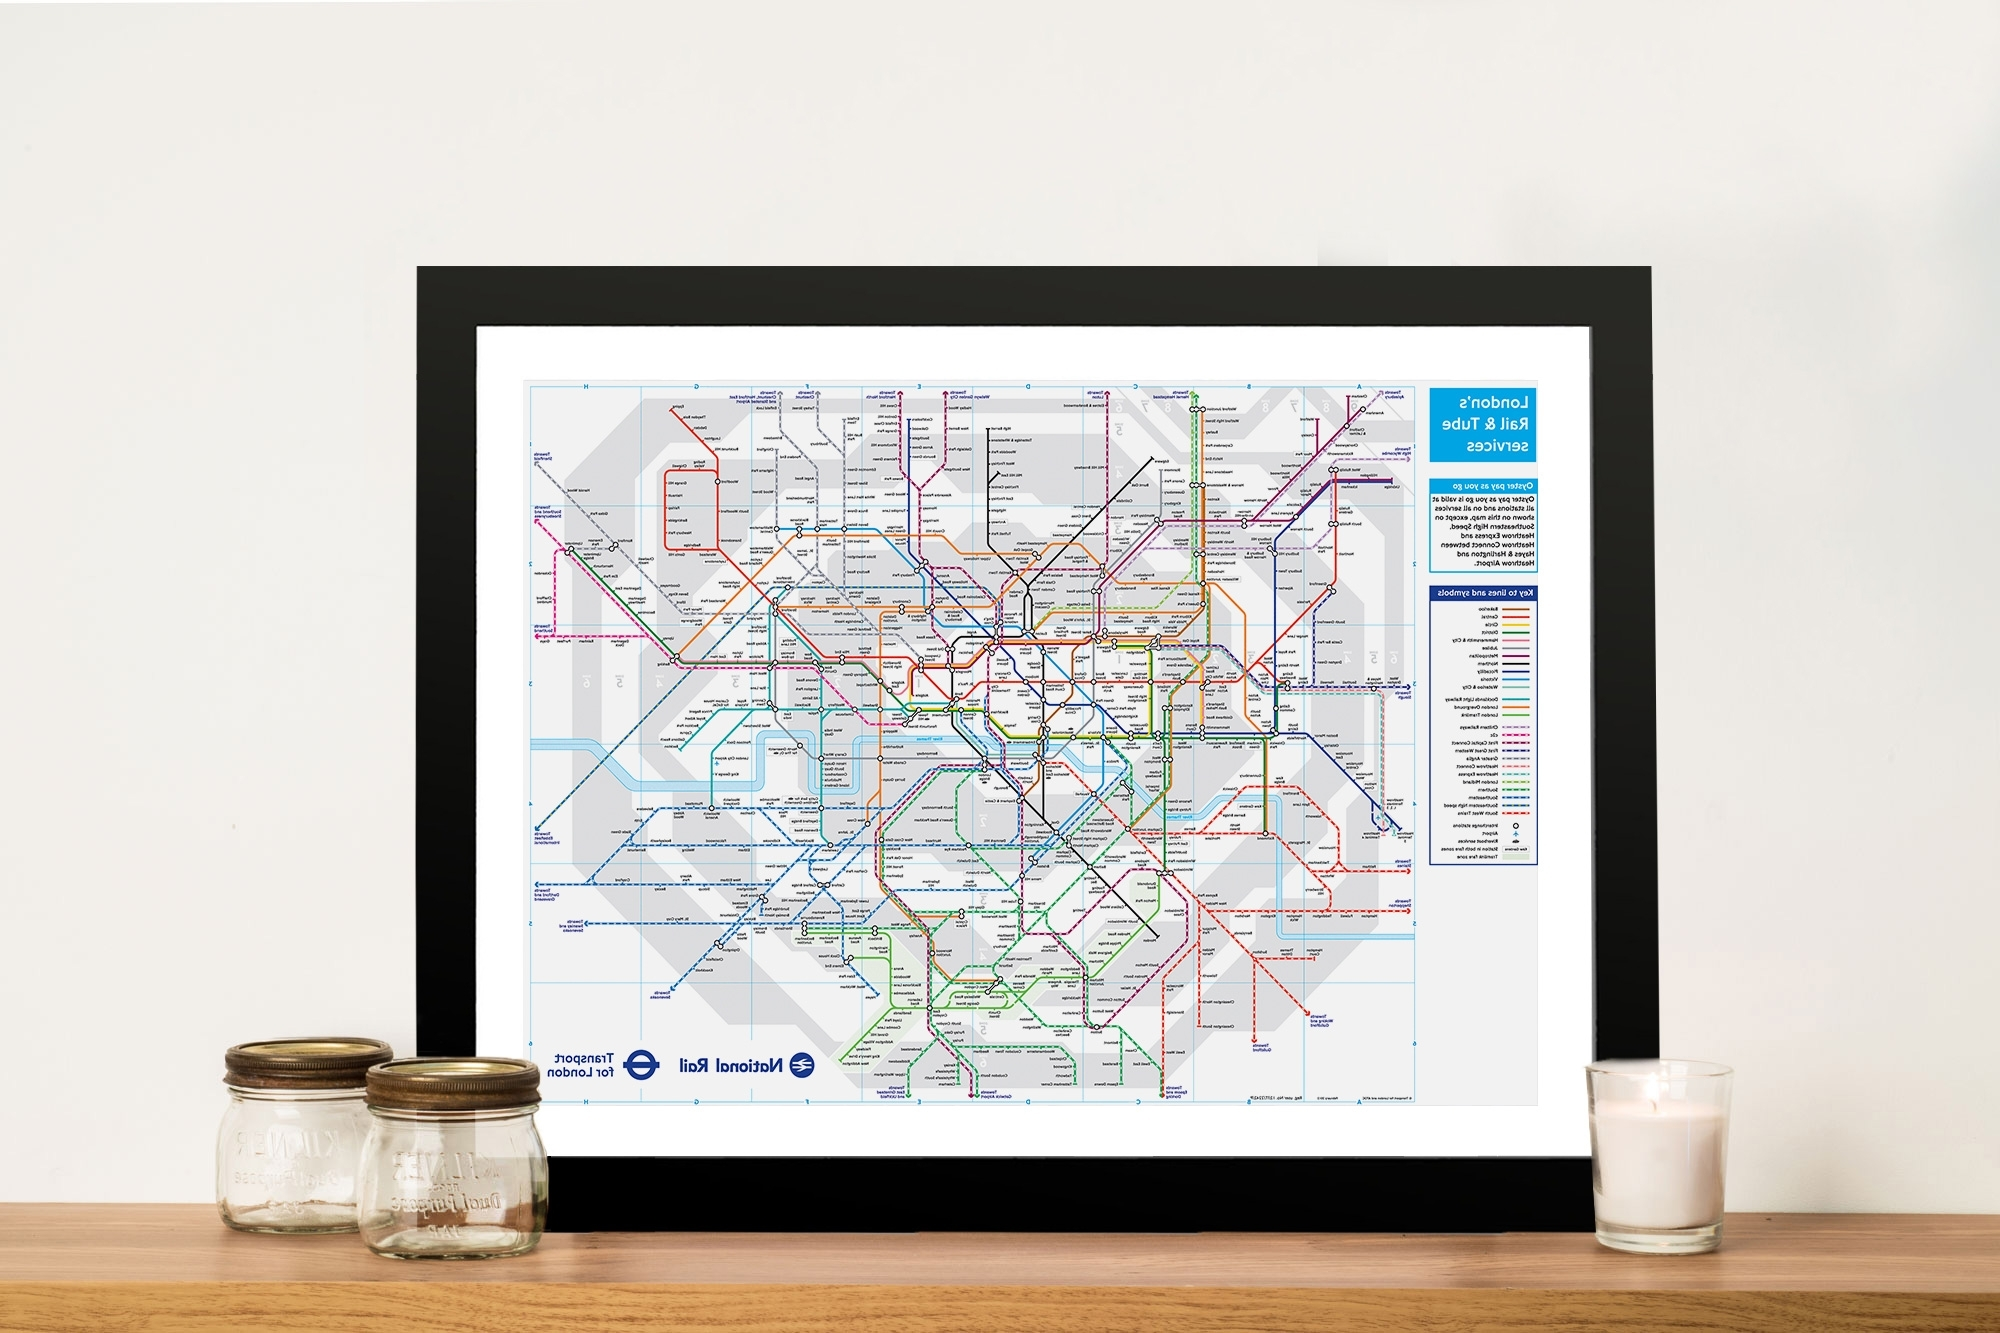 London Underground Tube Map Canvas Wall Art Pictures Australia With Most Recent Tube Map Wall Art (View 3 of 15)